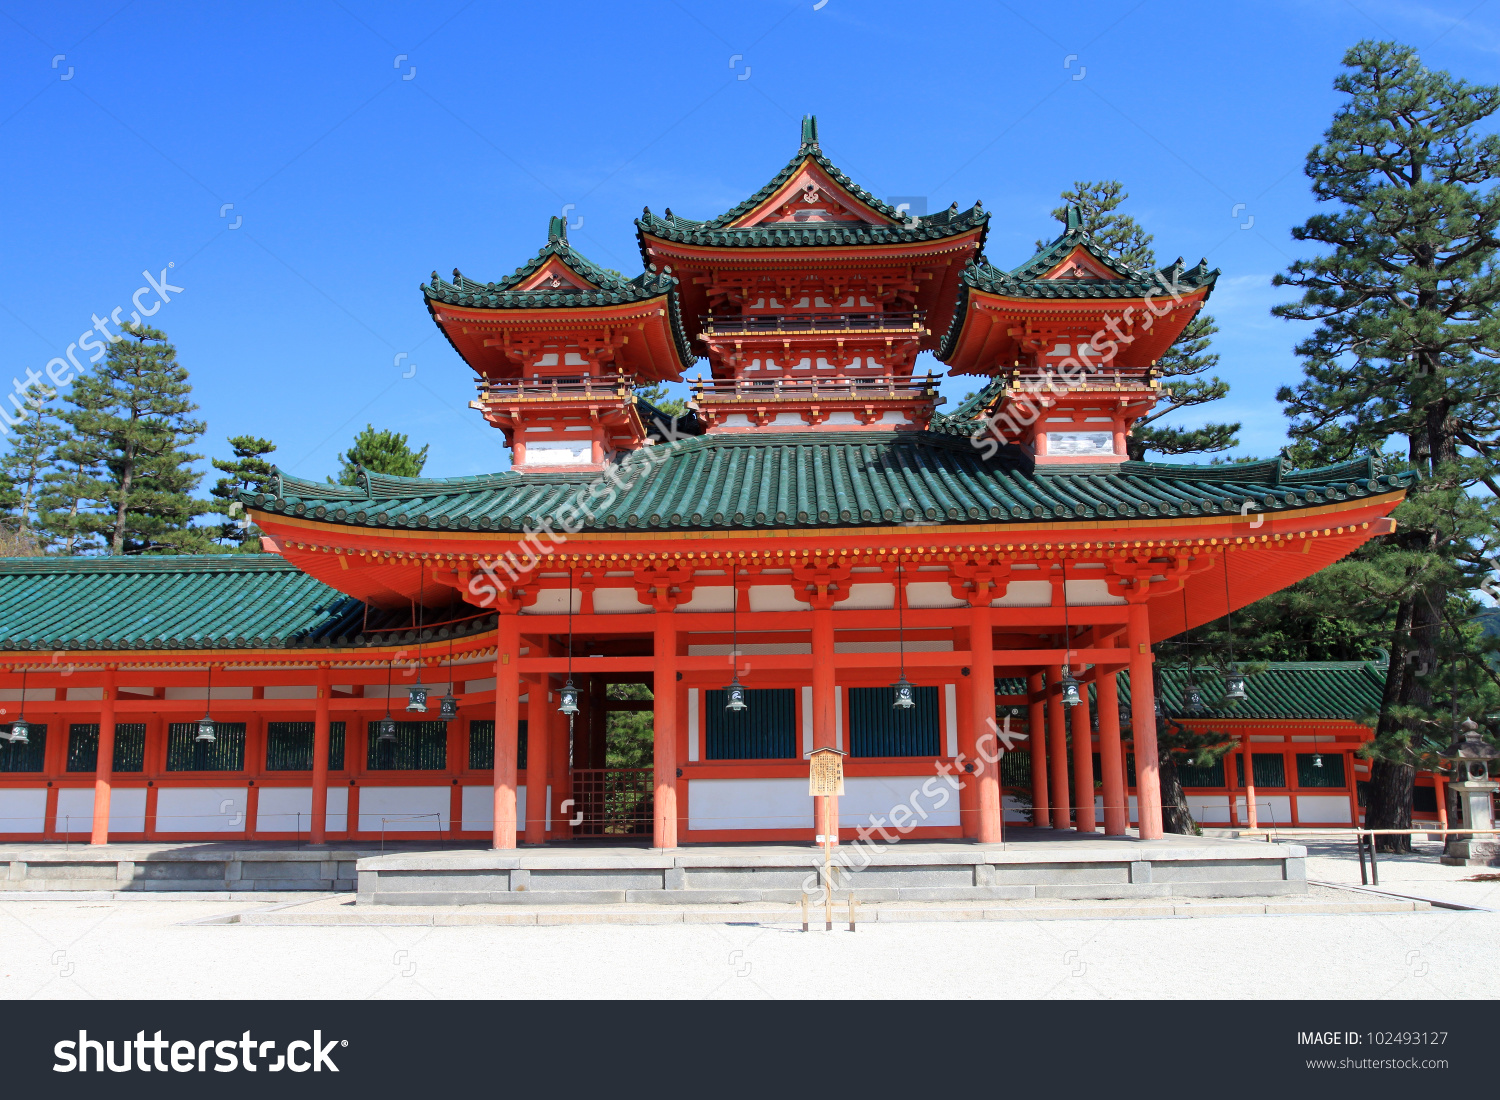 Heian Shrine, Kyoto, Japan Stock Photo 102493127 : Shutterstock.